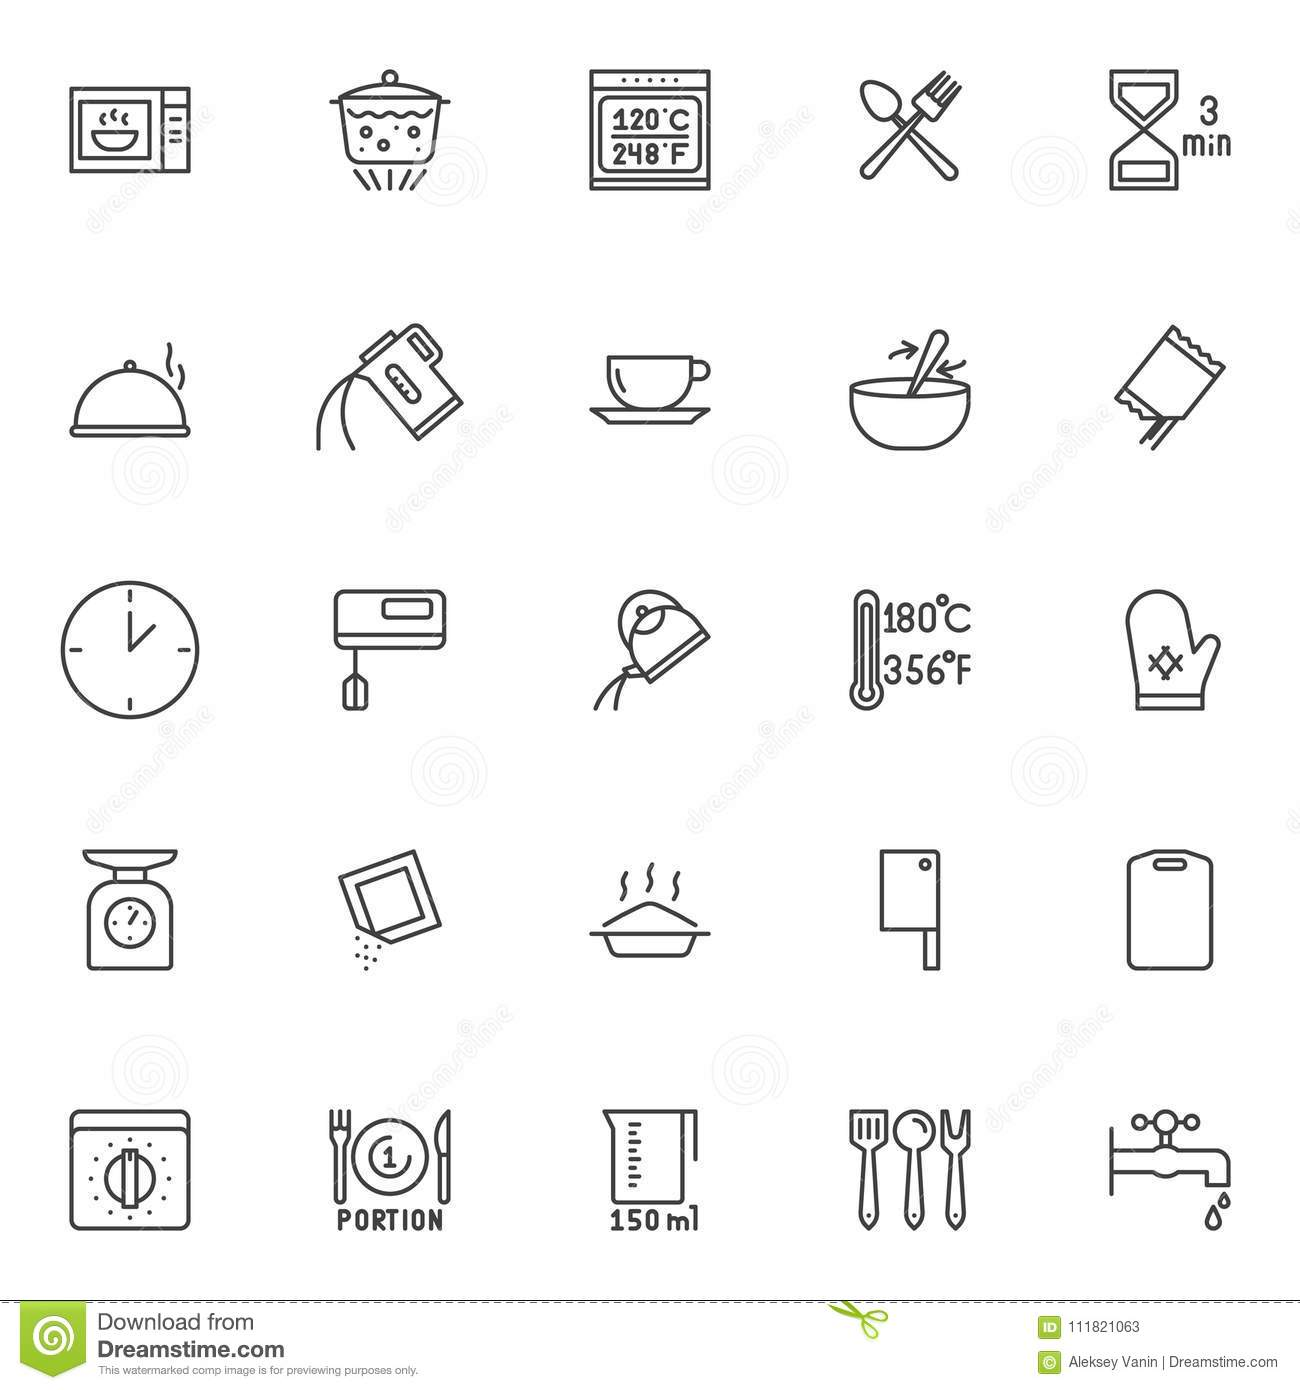 Cooking Instructions And Kitchenware Outline Icons Set Stock Vector